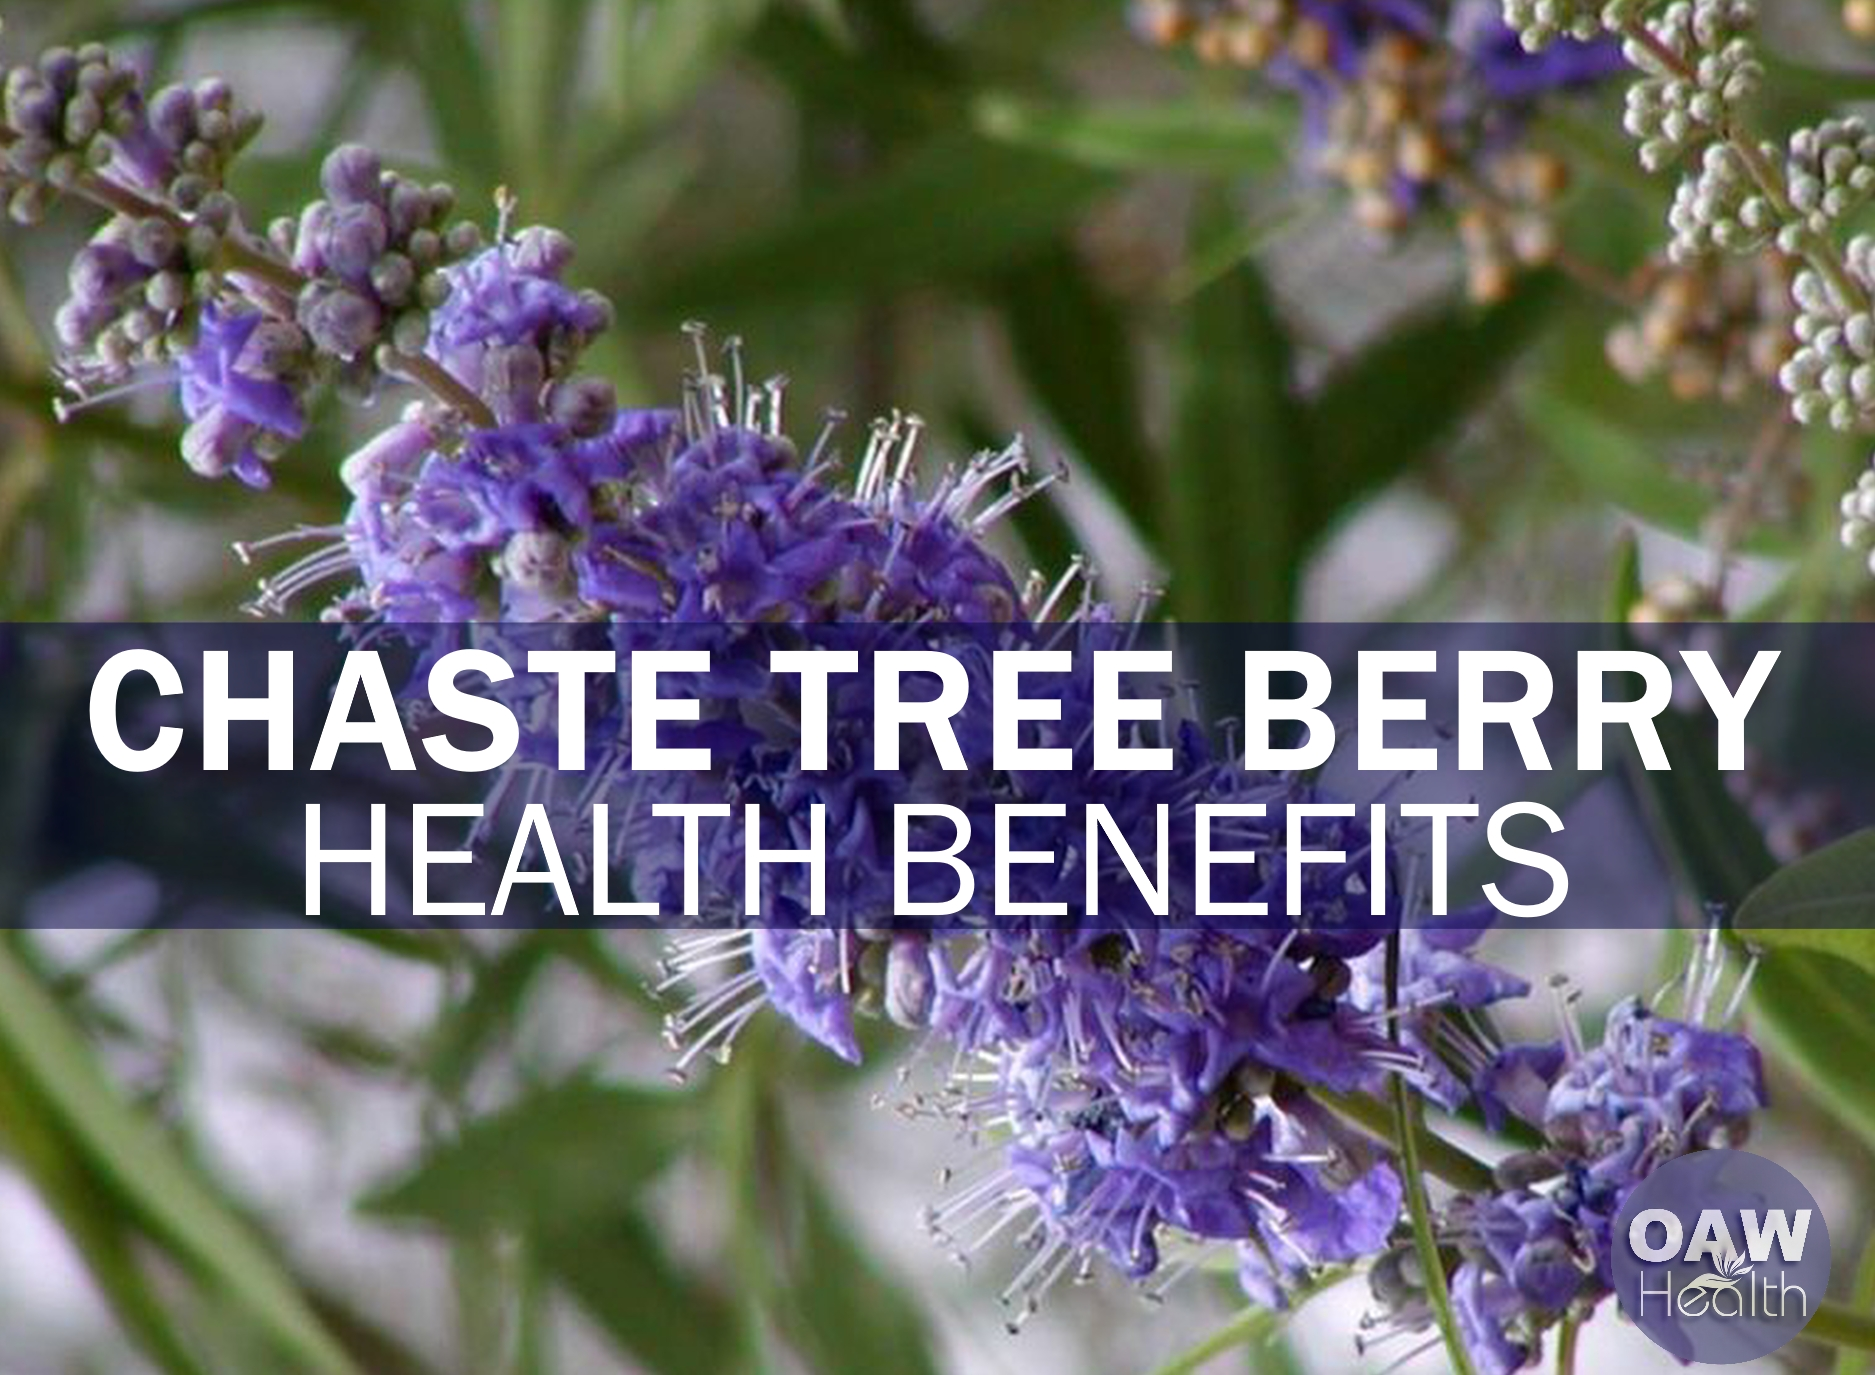 23 Amazing Health Benefits of Chaste Tree Berry